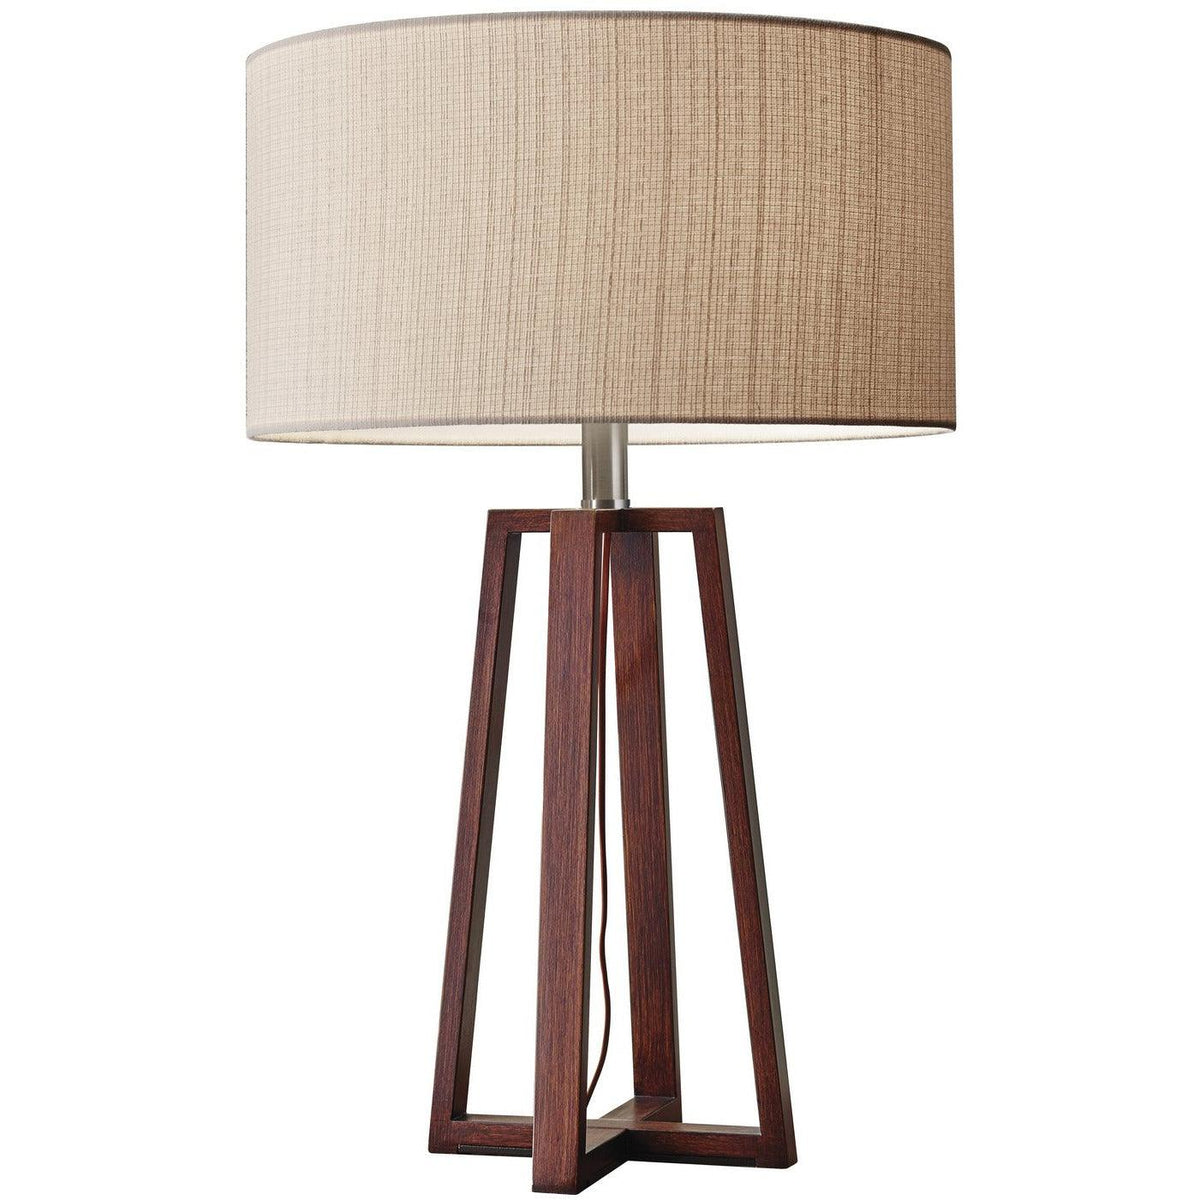 Adesso Home - 1503-15 - One Light Table Lamp - Quinn - Walnut Birch Wood